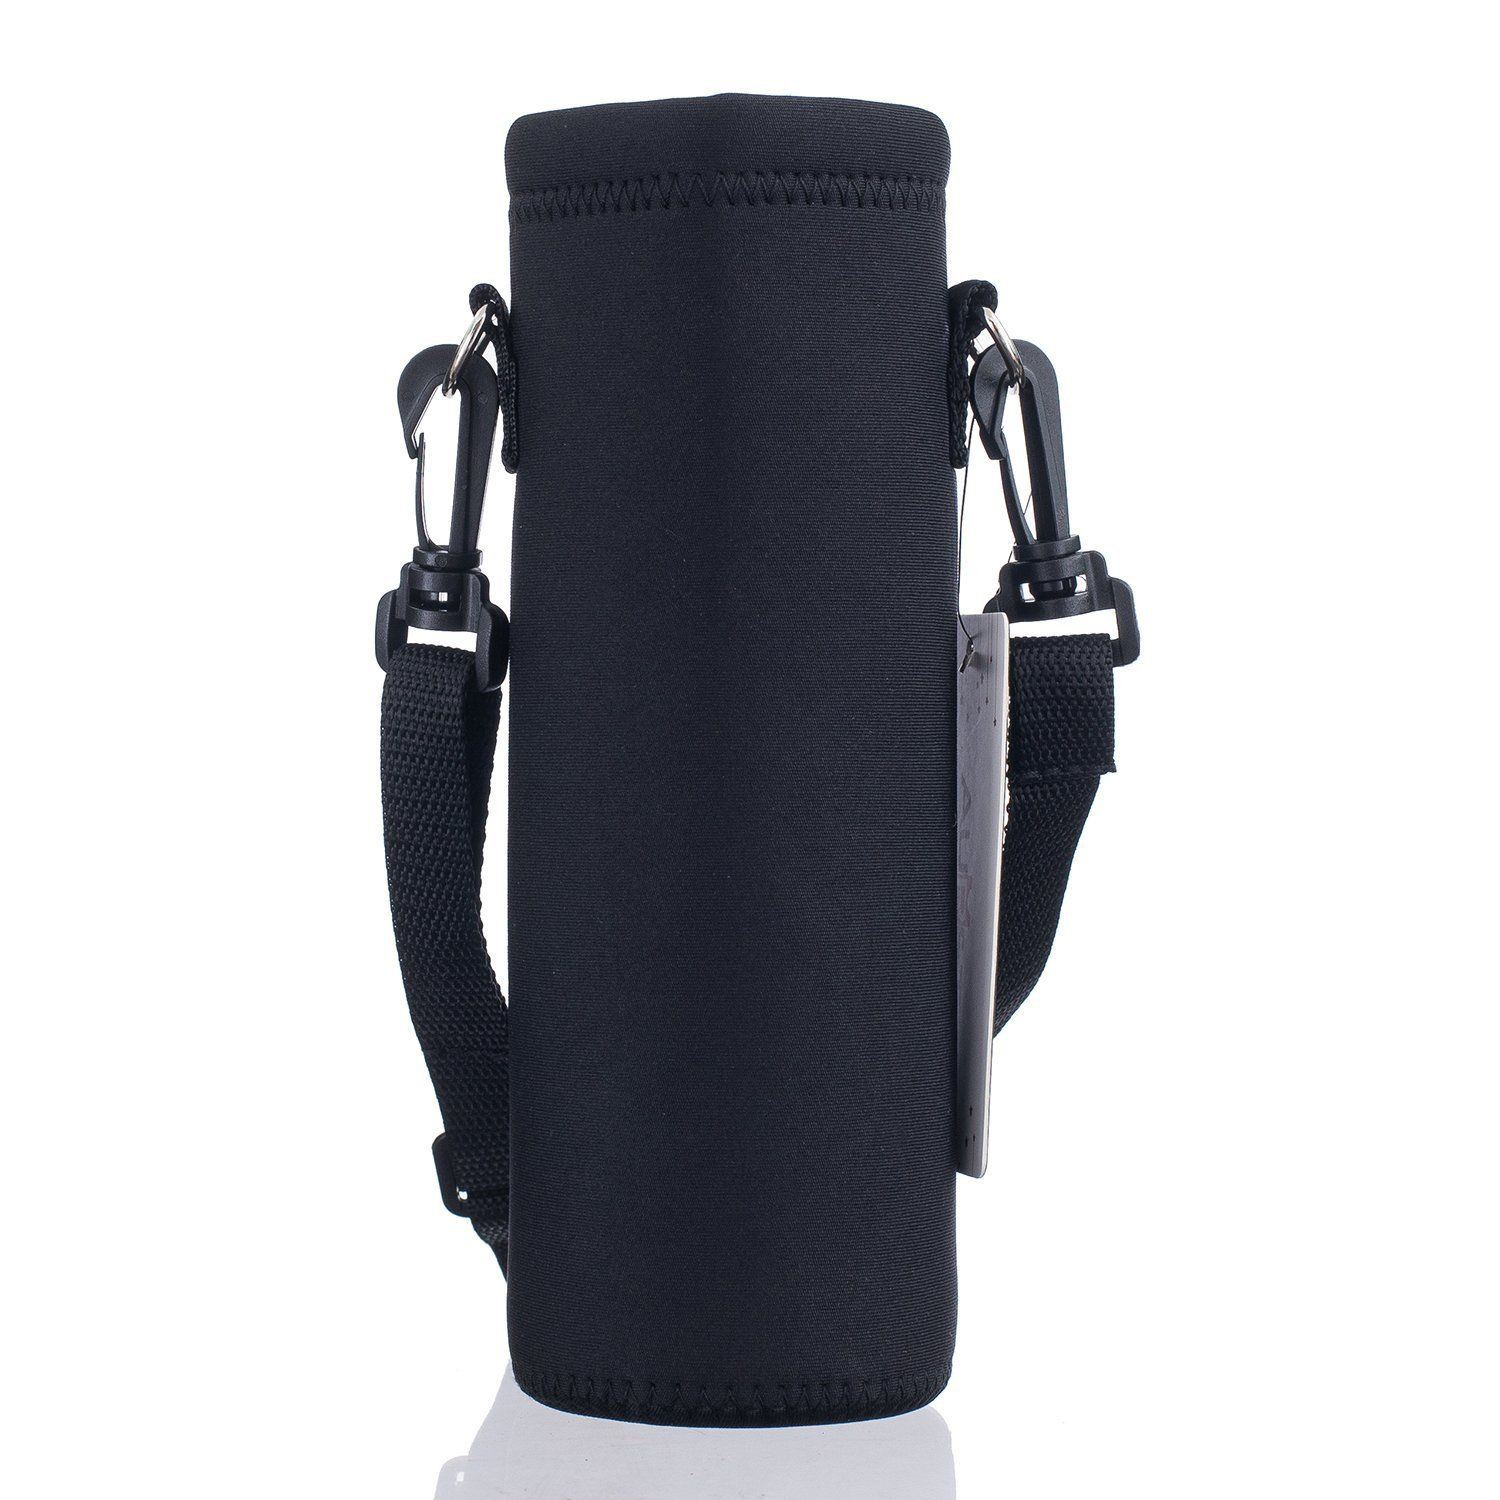 Insulated Water Bottle Holder with Strap